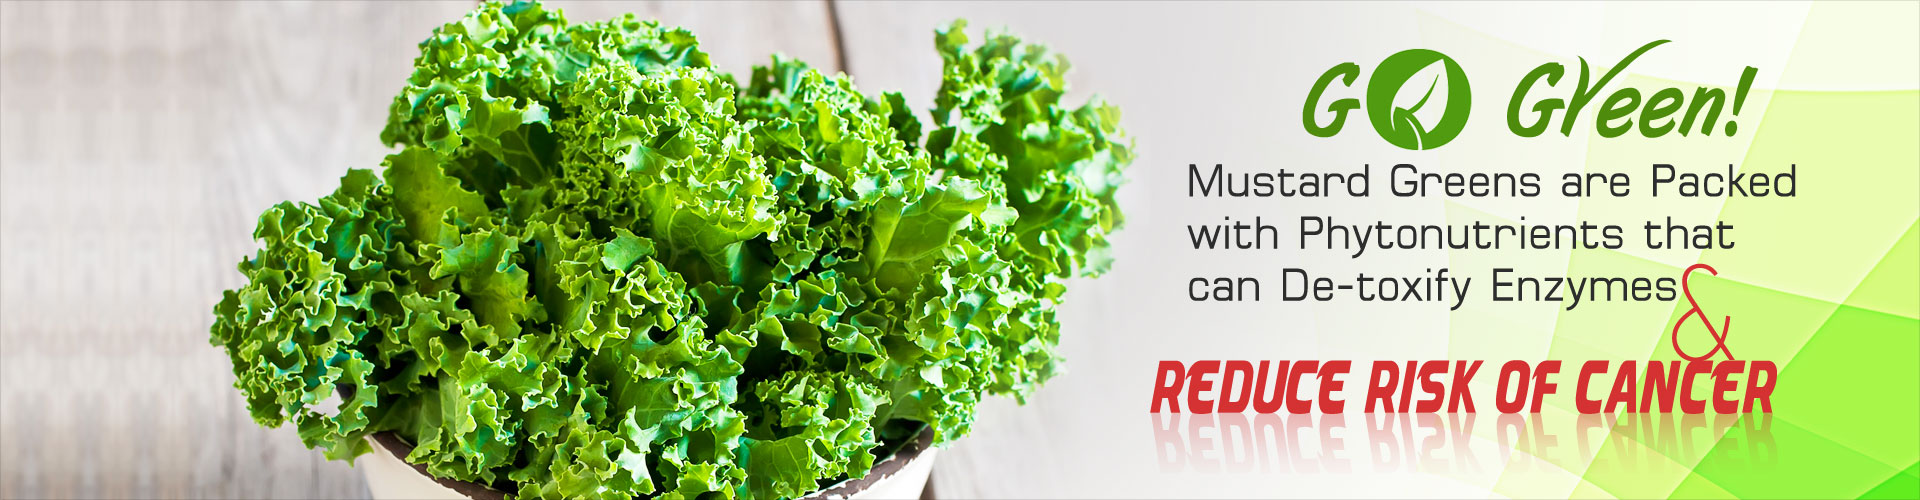 Go Green! Mustard greens are packed with phytonutrients that can de-toxify enzymes and reduce risk of cancer.